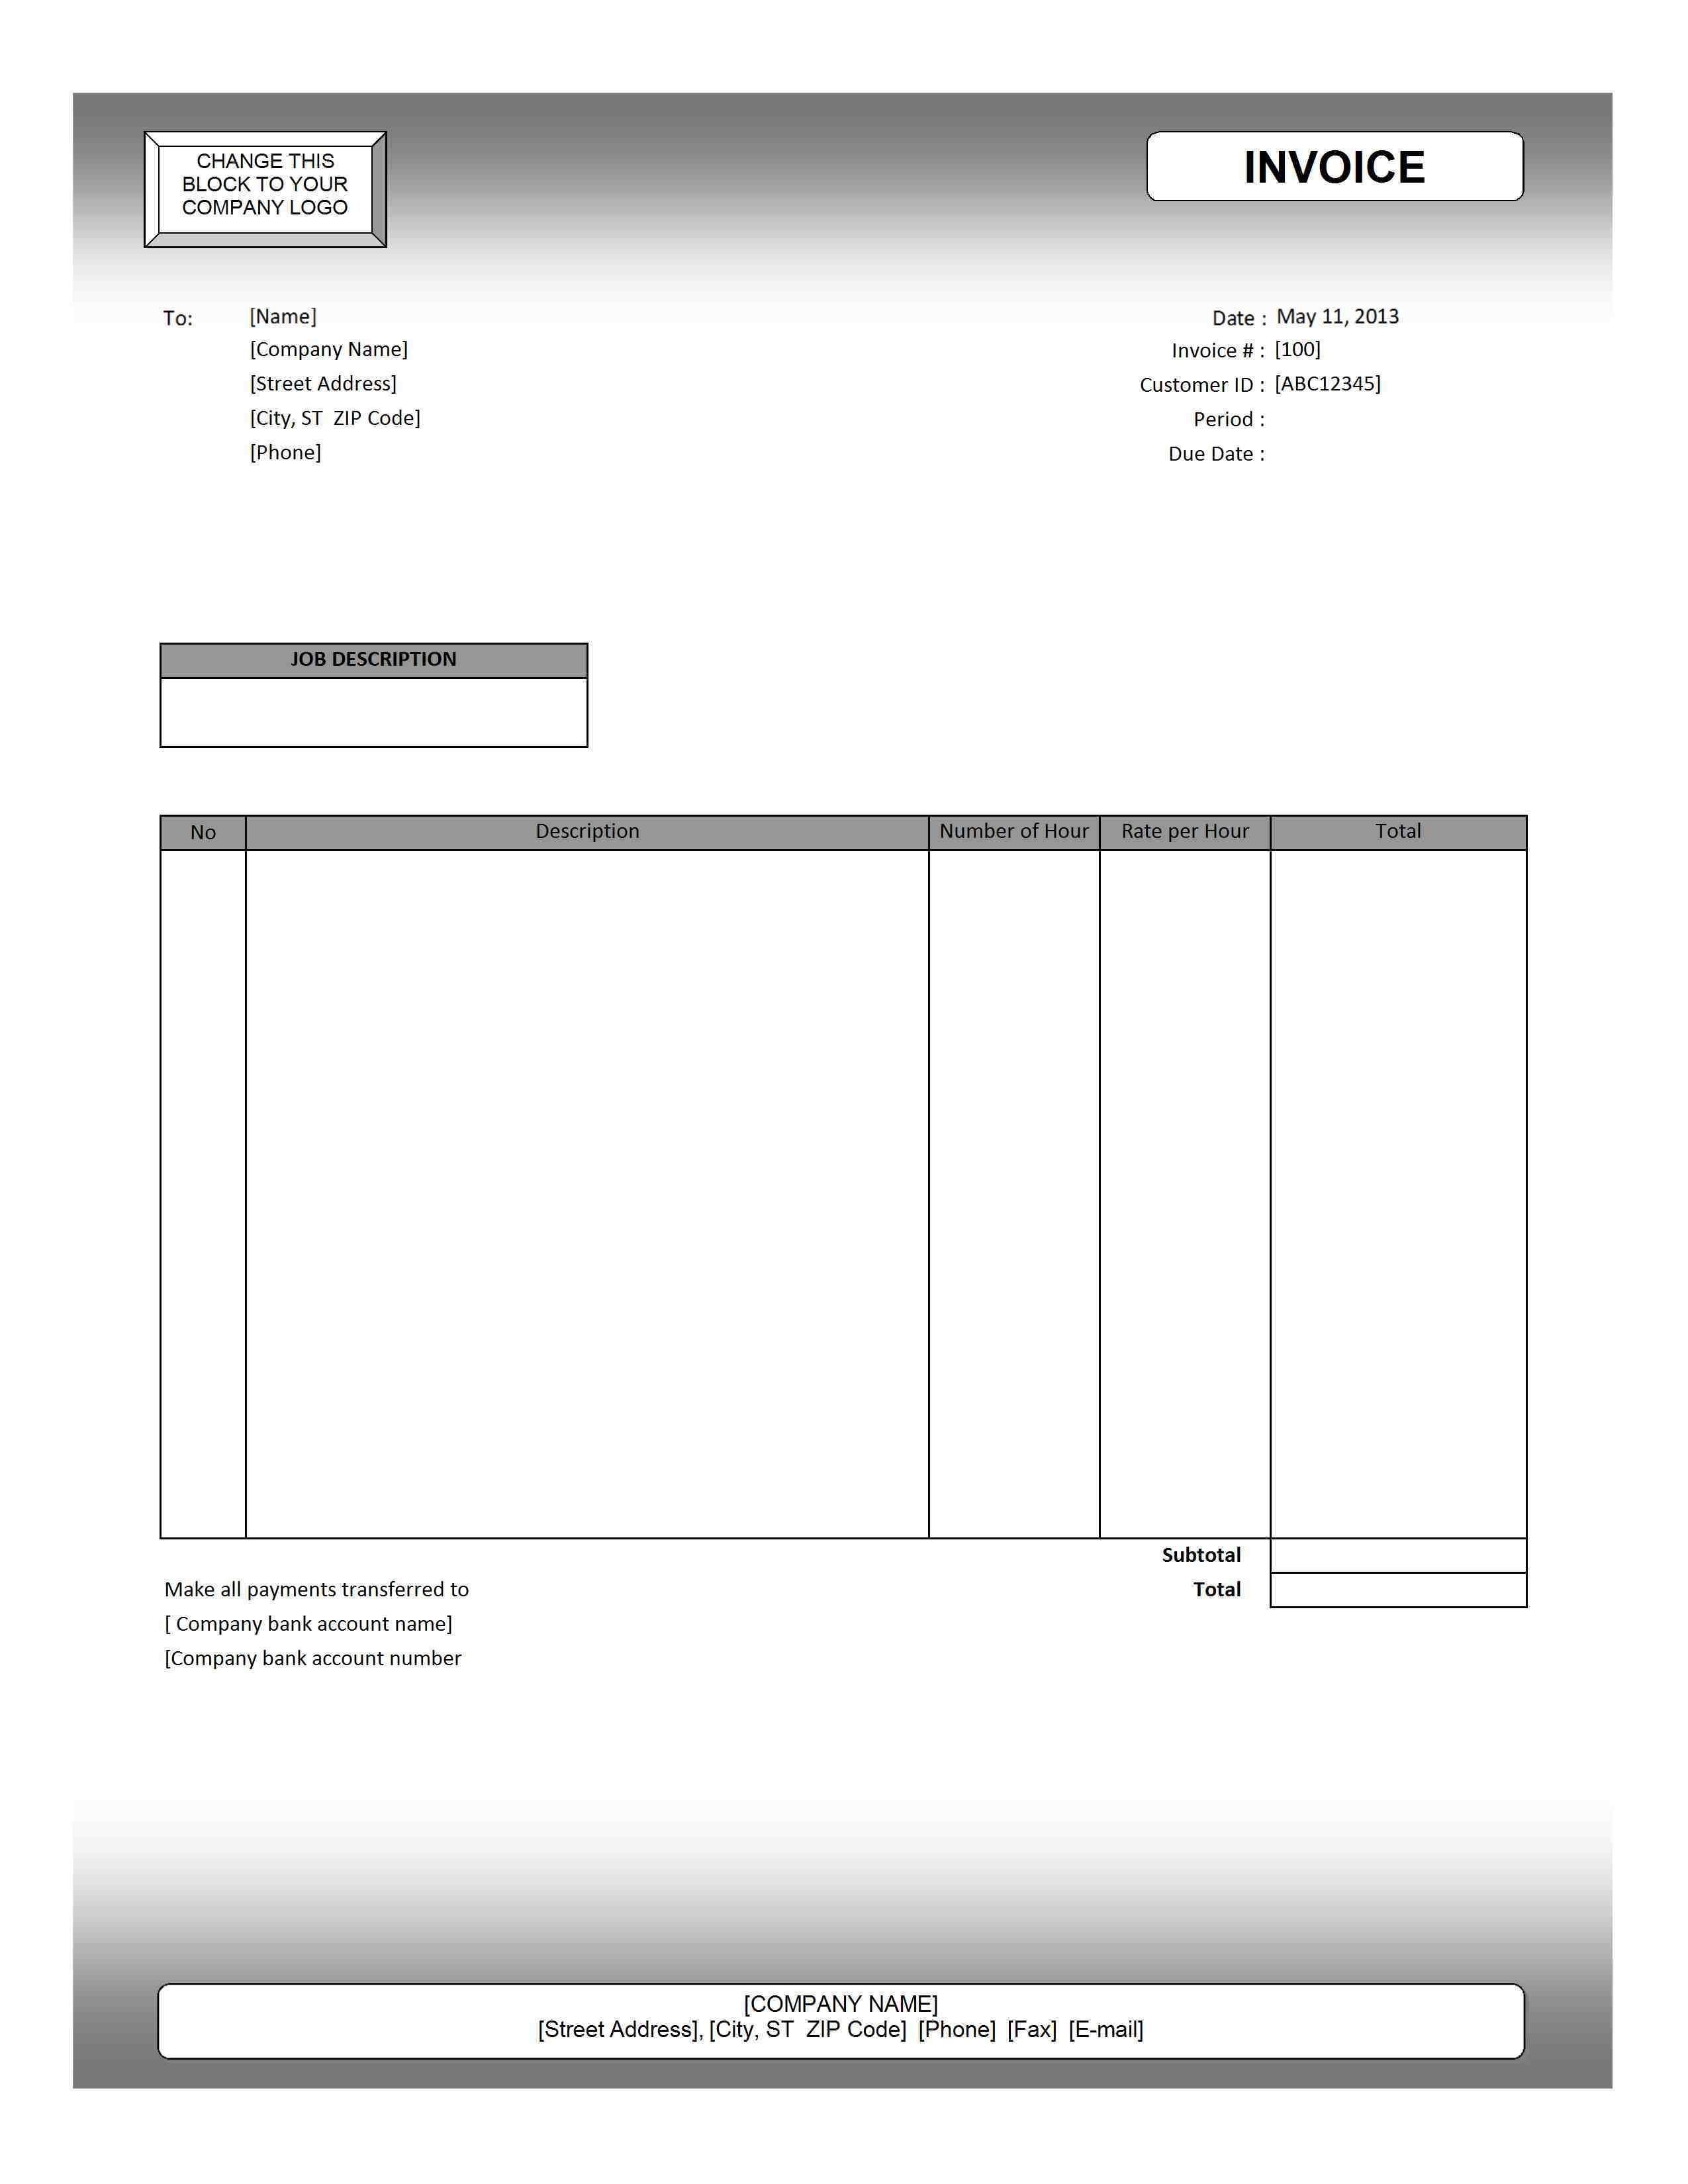 invoice google doc template residers free invoice template google docs